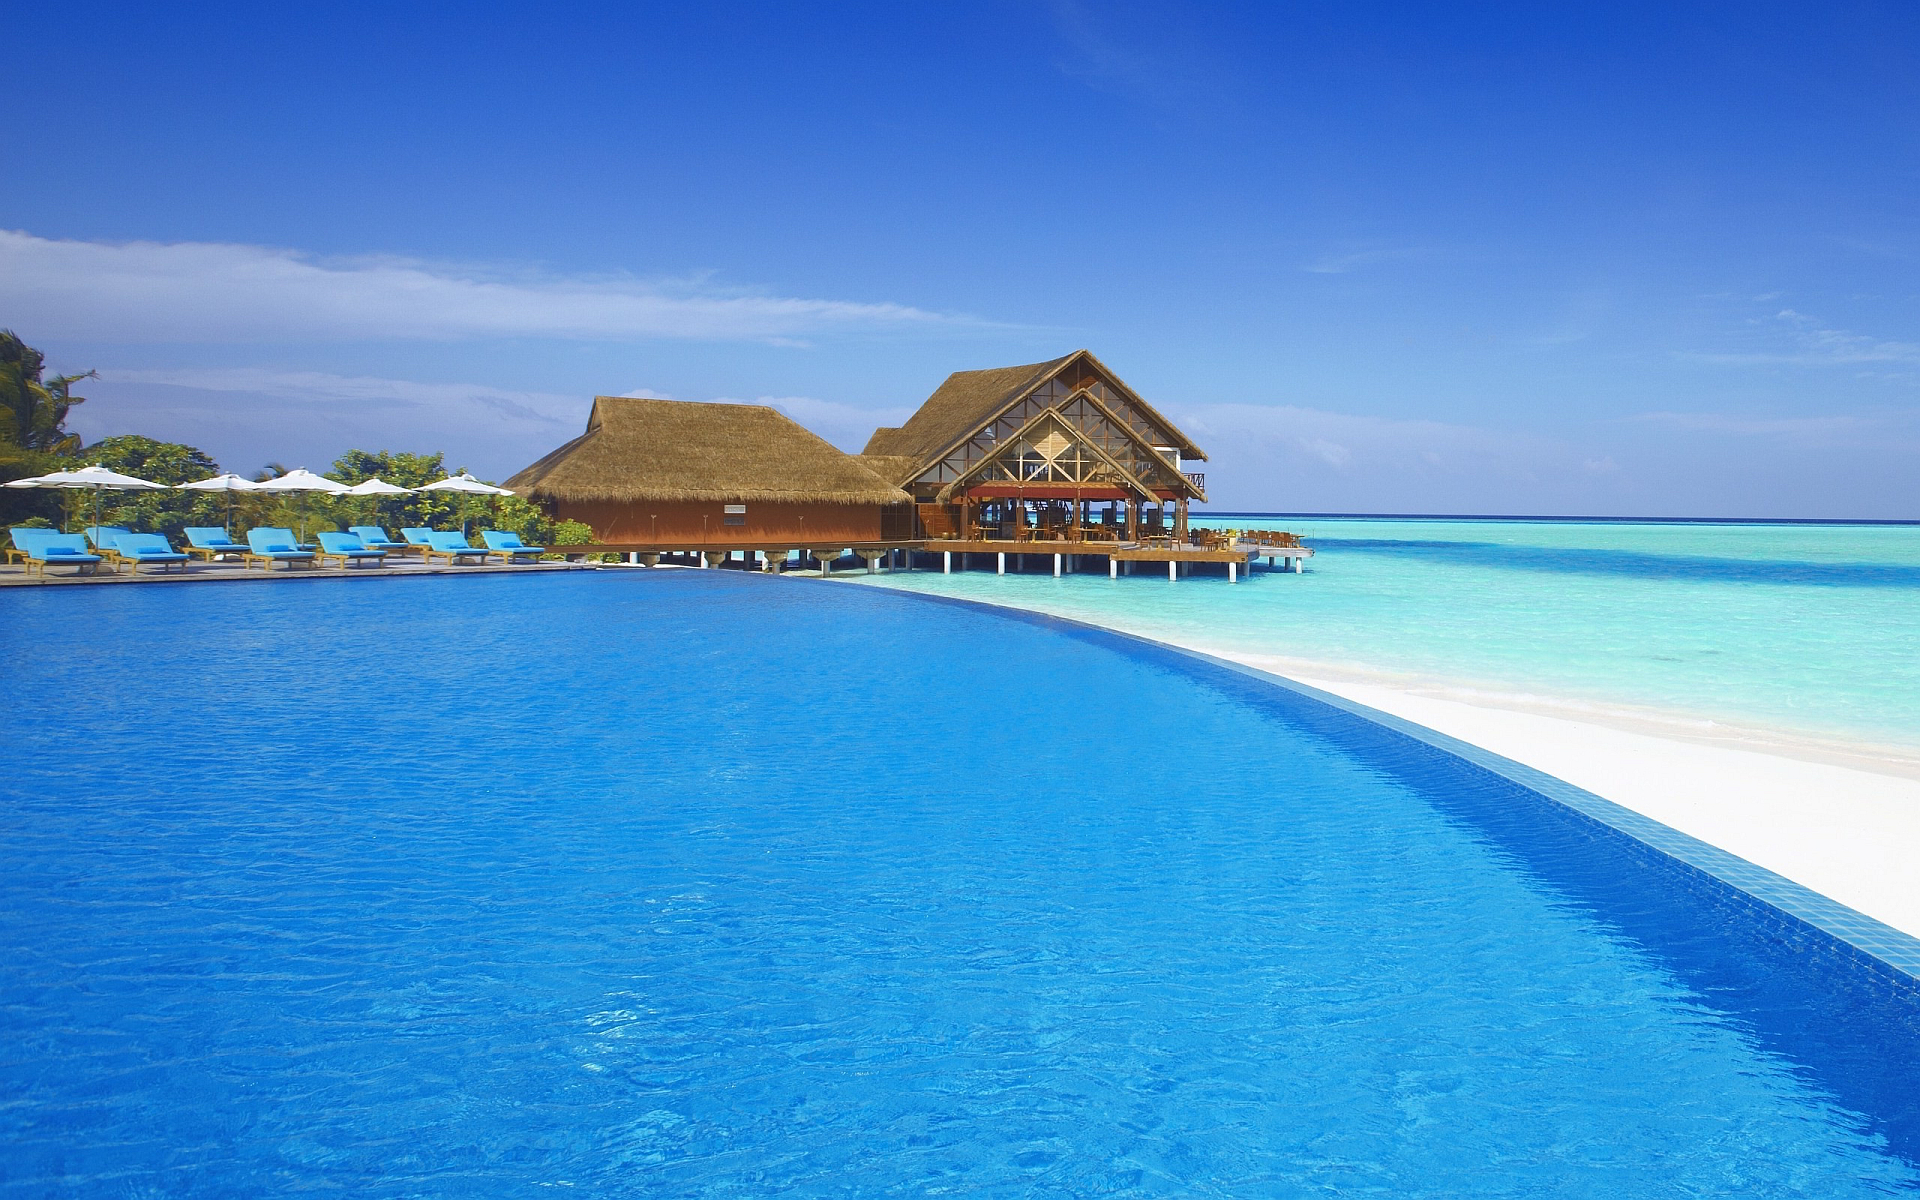 beach resort pool desktop download - HD Desktop Wallpapers ...